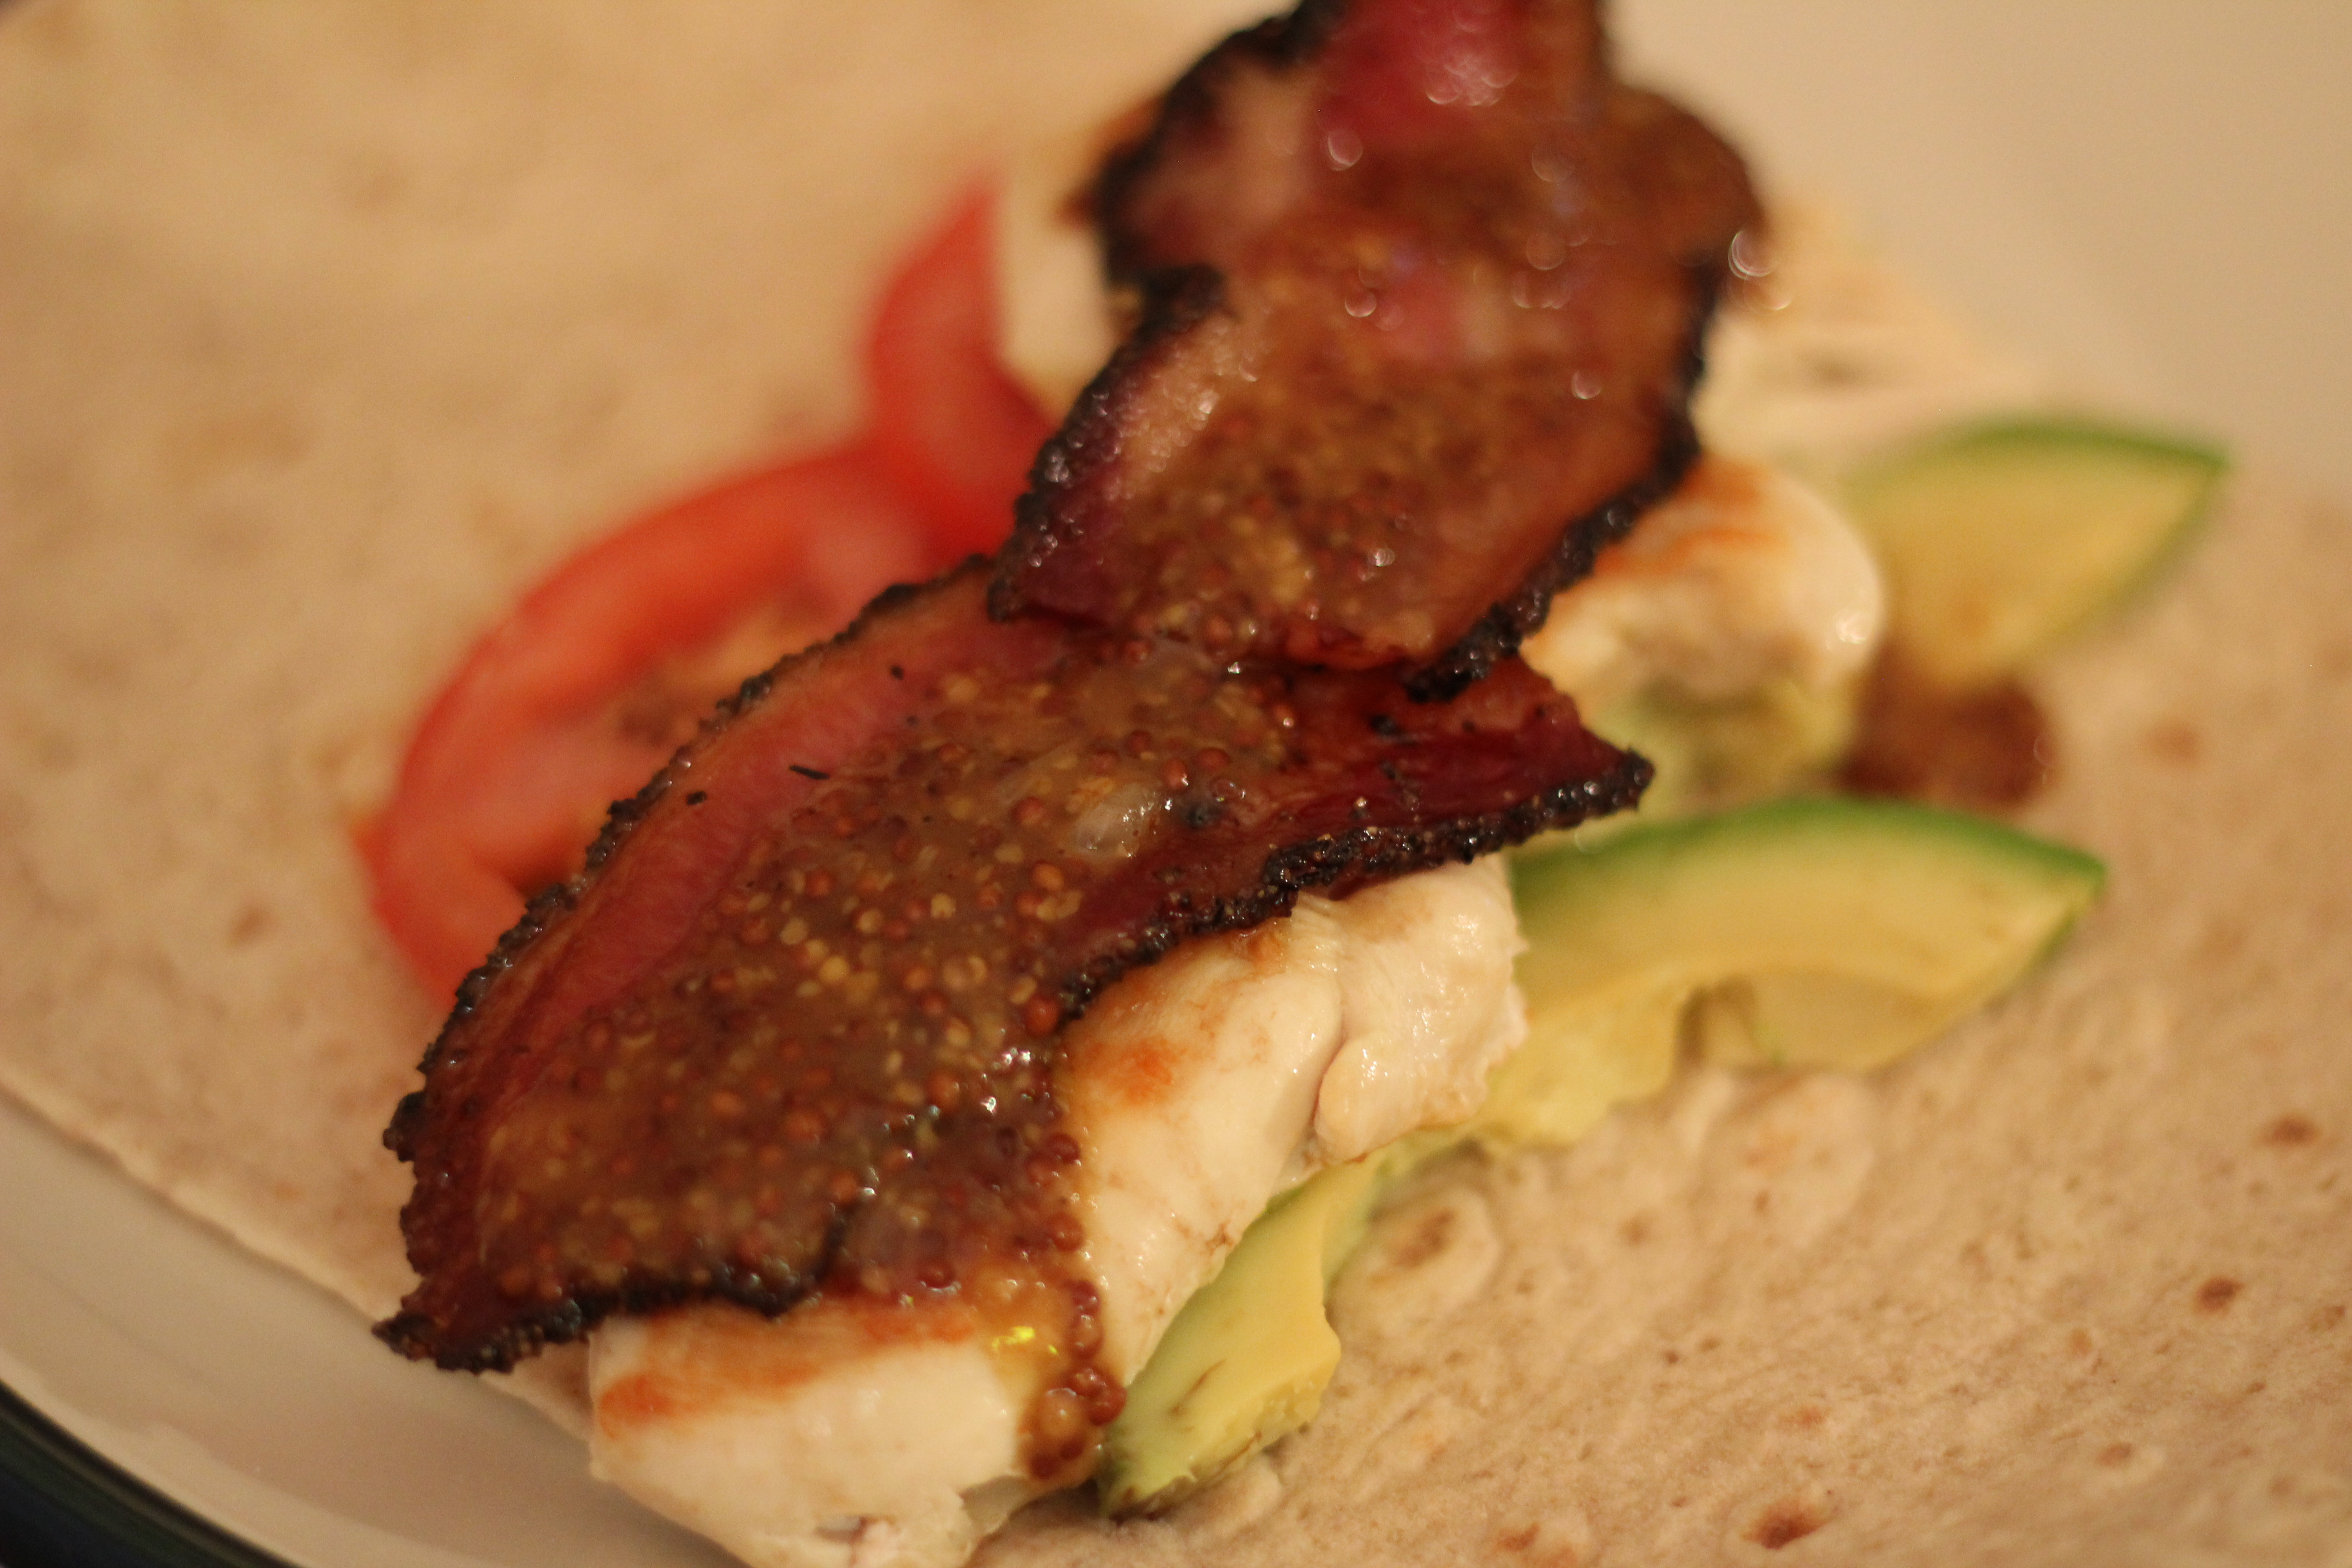 Recipe: Grilled Chicken Wrap with Homemade Honey Mustard Sauce